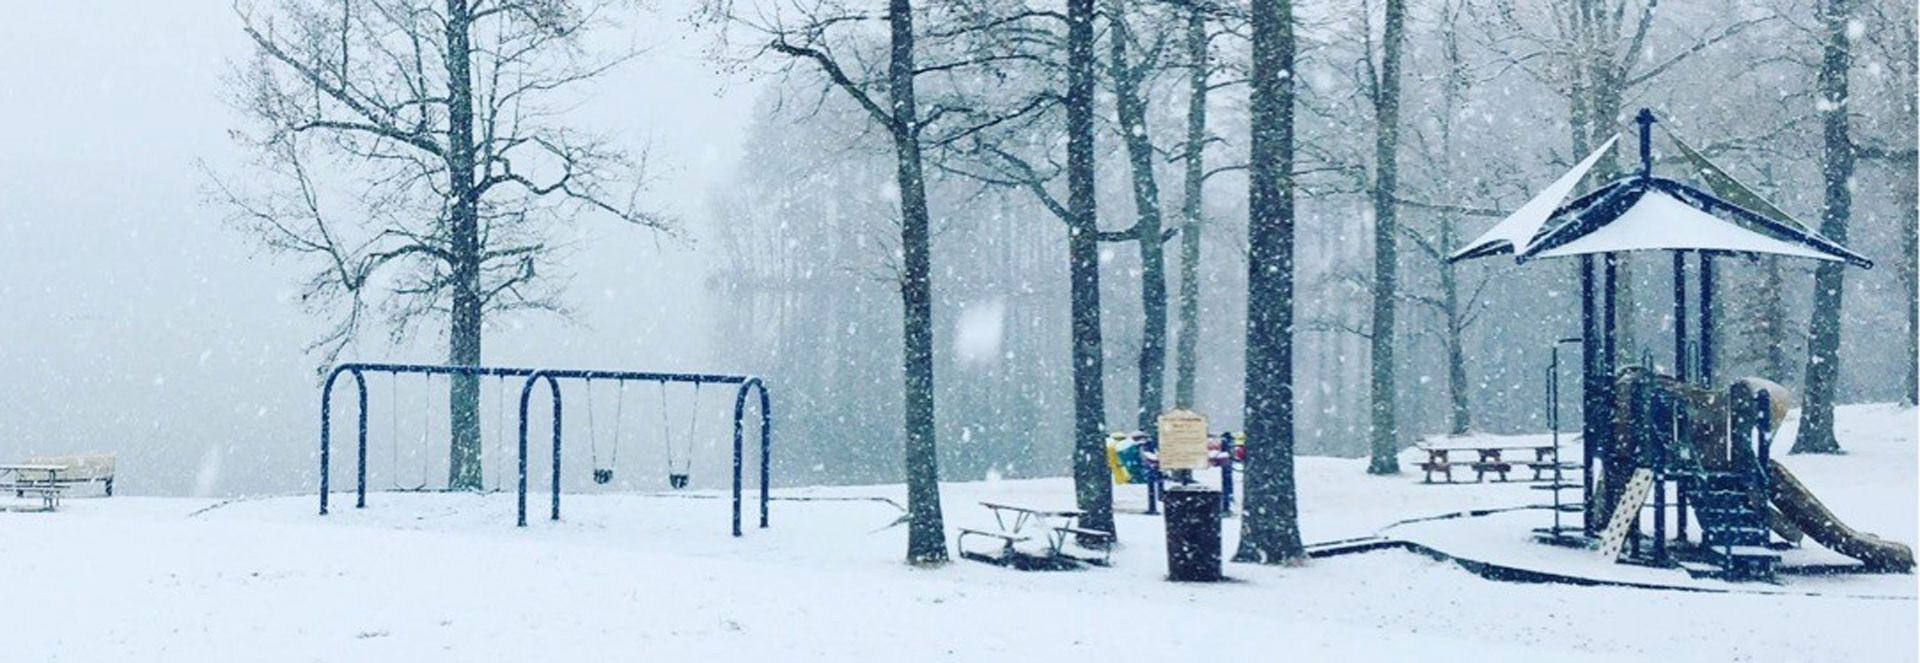 Lake Roger's Snowy Playground